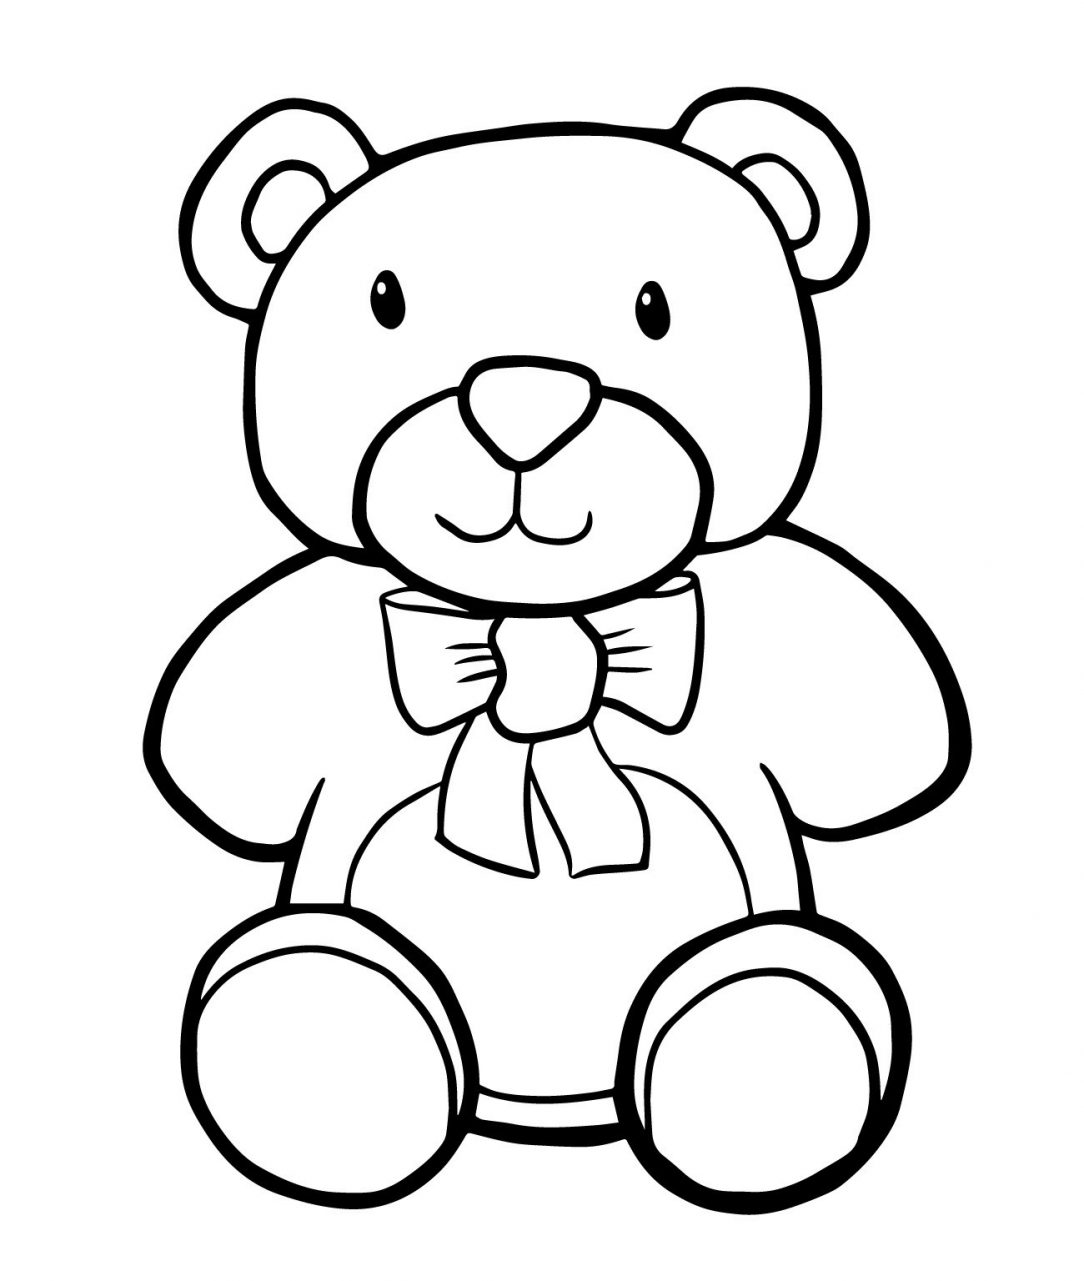 1084x1281 Teddy Bear Drawing Cute Art And Colouring Pictures Easy Pencil